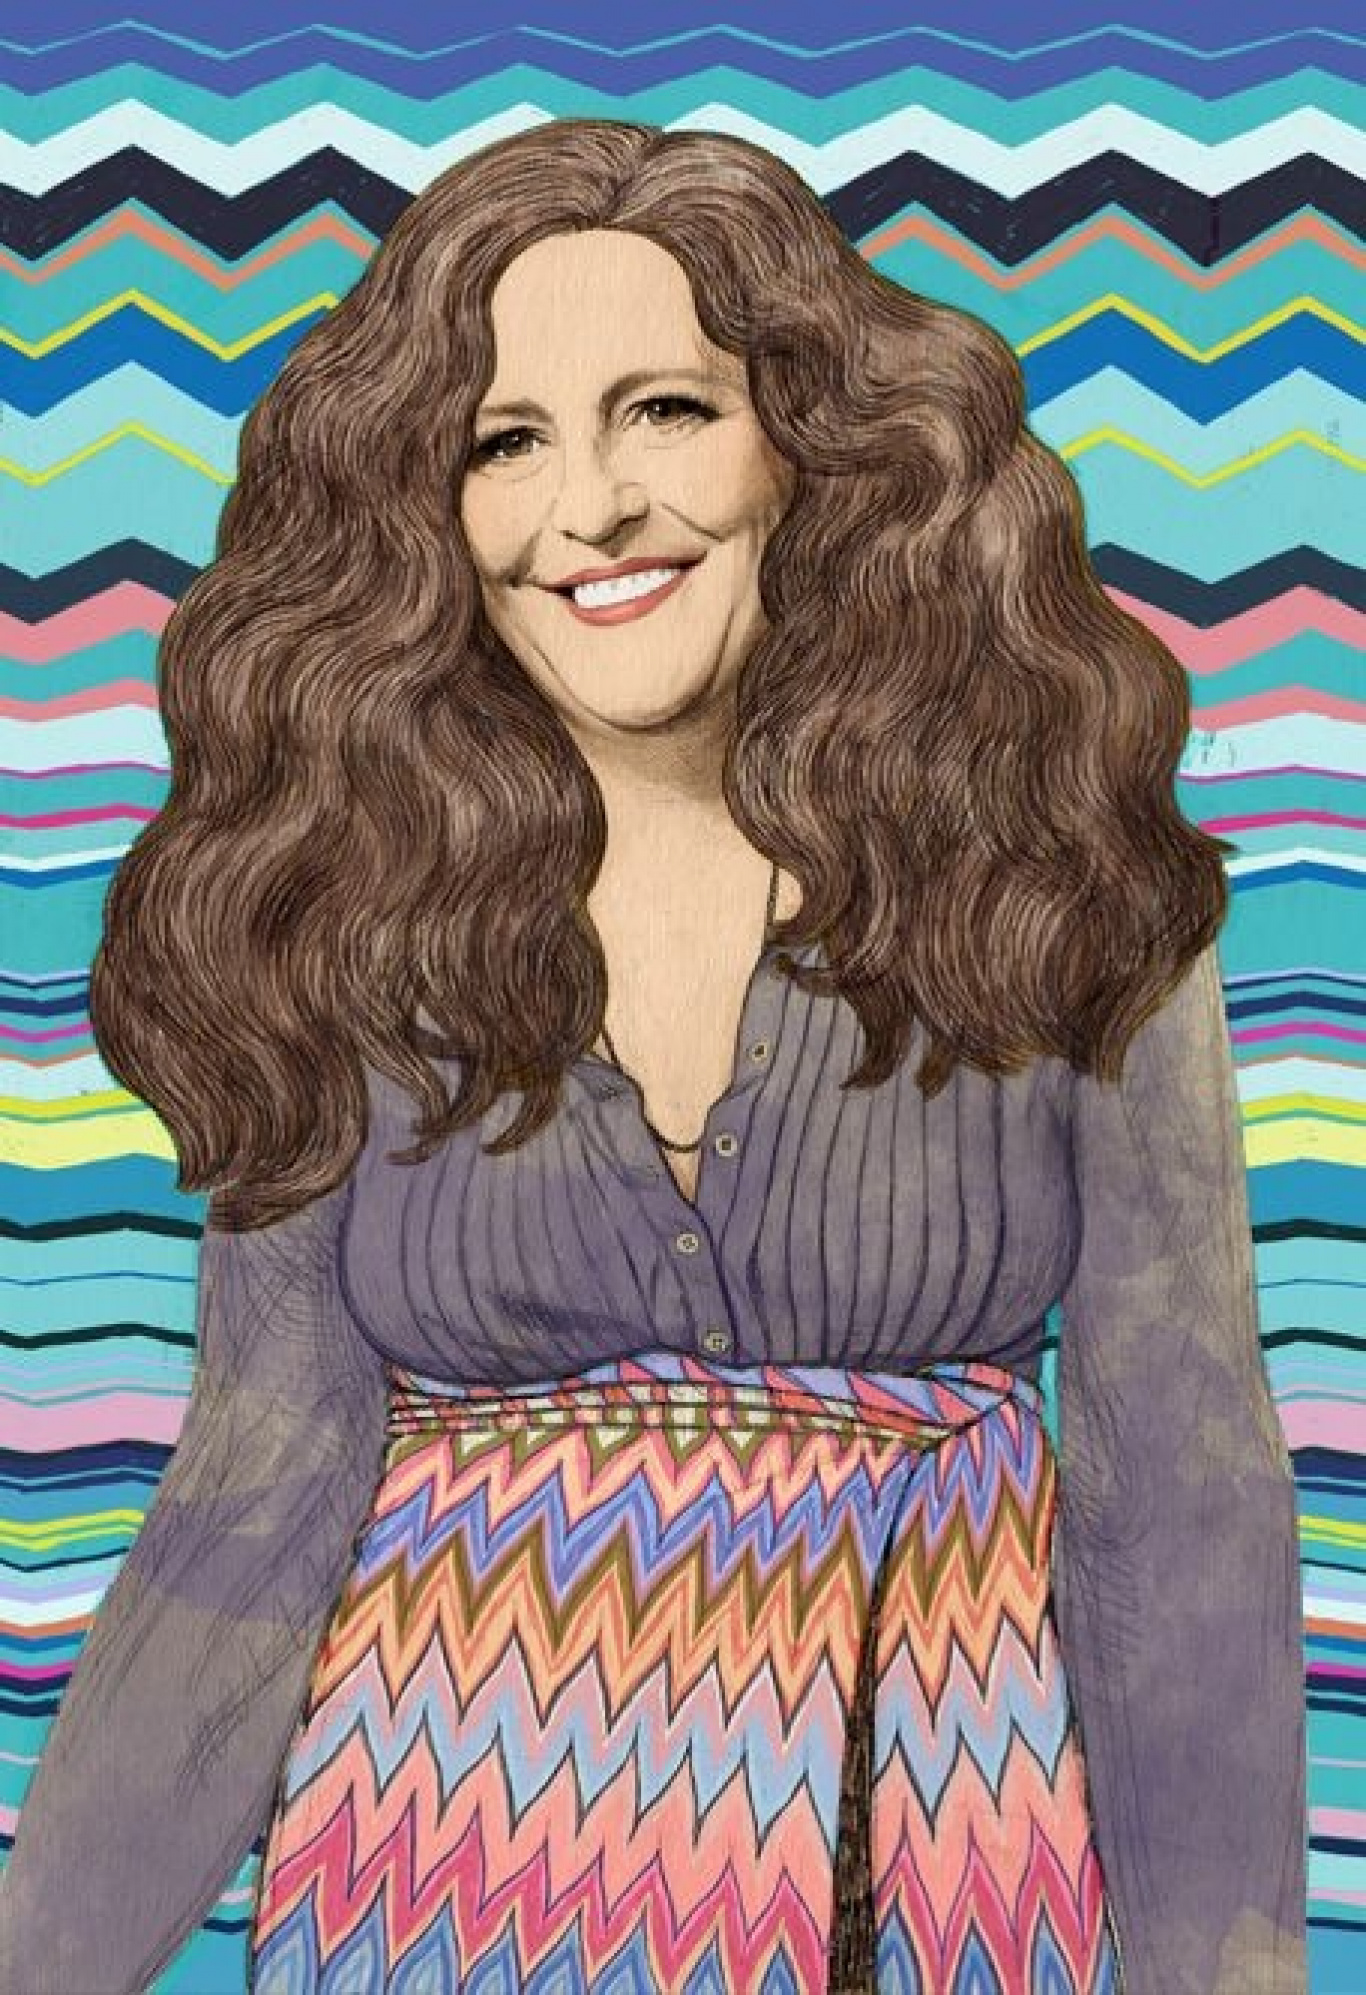 Interview with Angela Missoni - Illustration by Anna Higgie